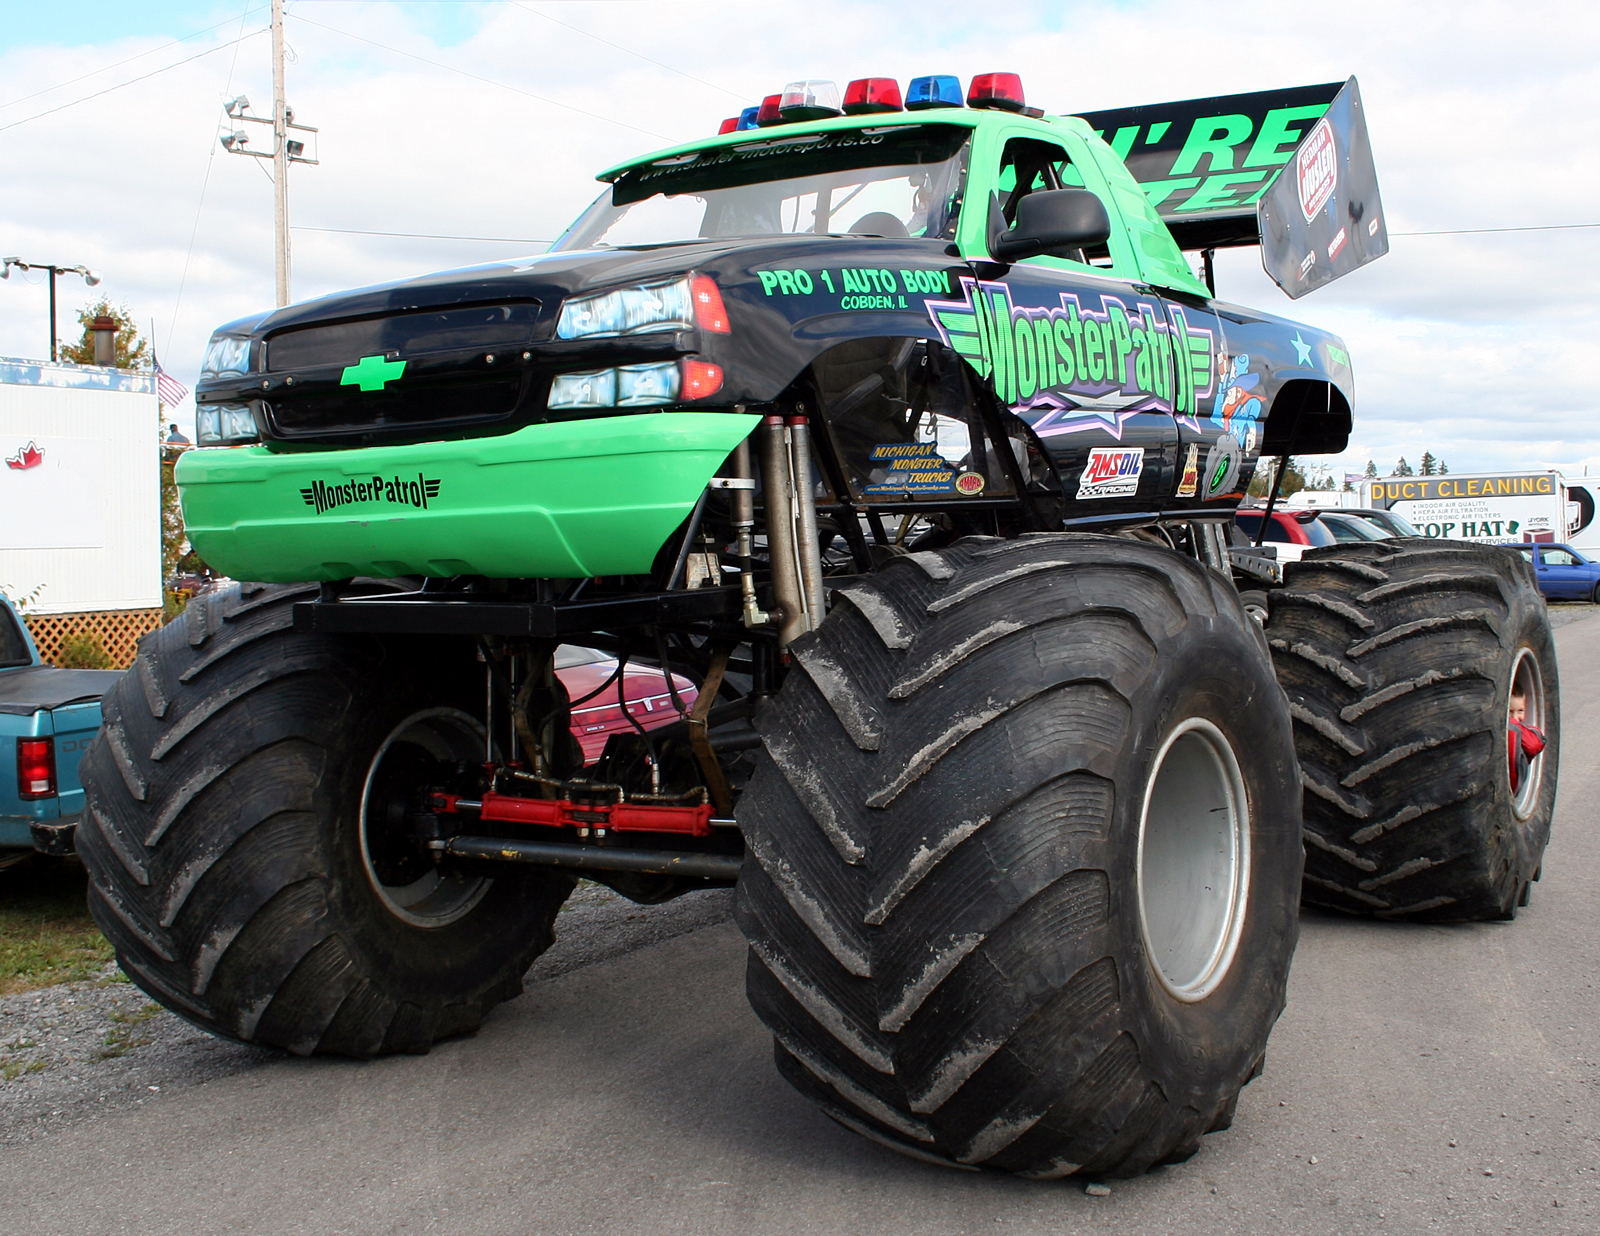 http://1.bp.blogspot.com/-uKEuYZHXUhA/T3BIVFfhWoI/AAAAAAAAKR0/MOBus_BdtsU/s1600/monstertrucks_wallpaper_006_1600_1236.jpg